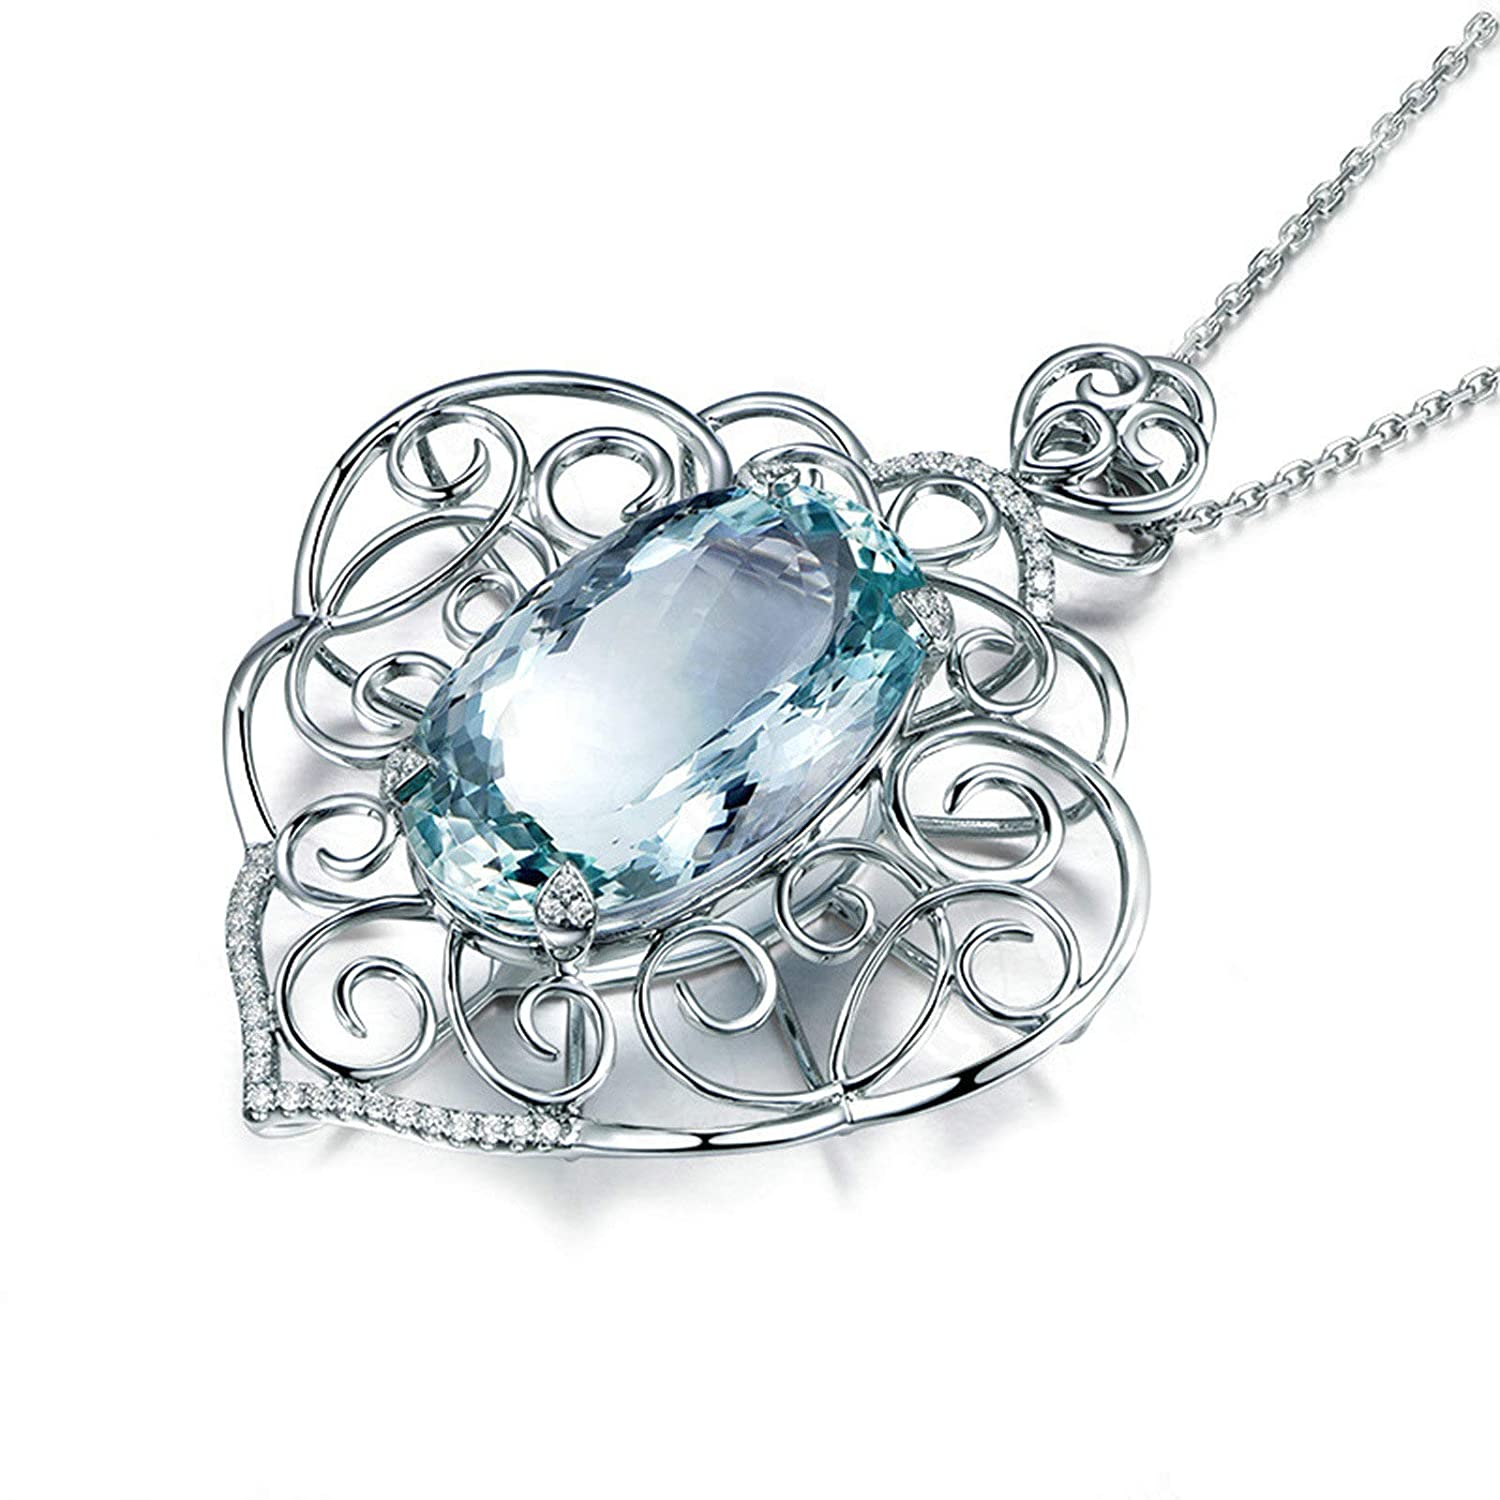 Beydodo Sterling Silver Necklace for Women Hollow Filigree Pendant Oval Topaz Necklaces for Wedding Party